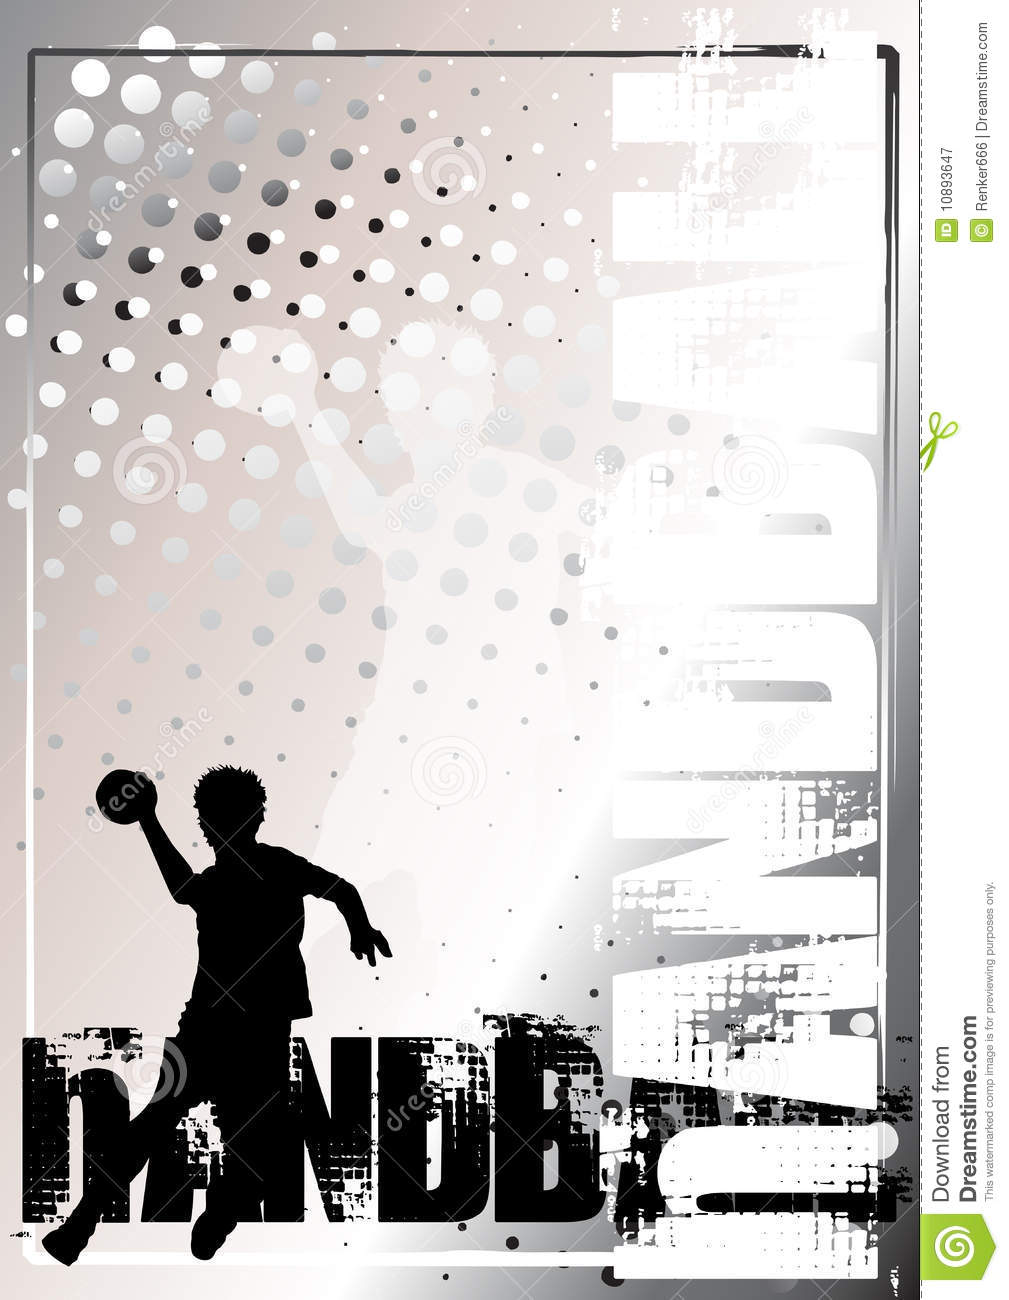 Fond d 39 or 3 d 39 affiche de handball photographie stock libre for Fond affiche gratuit